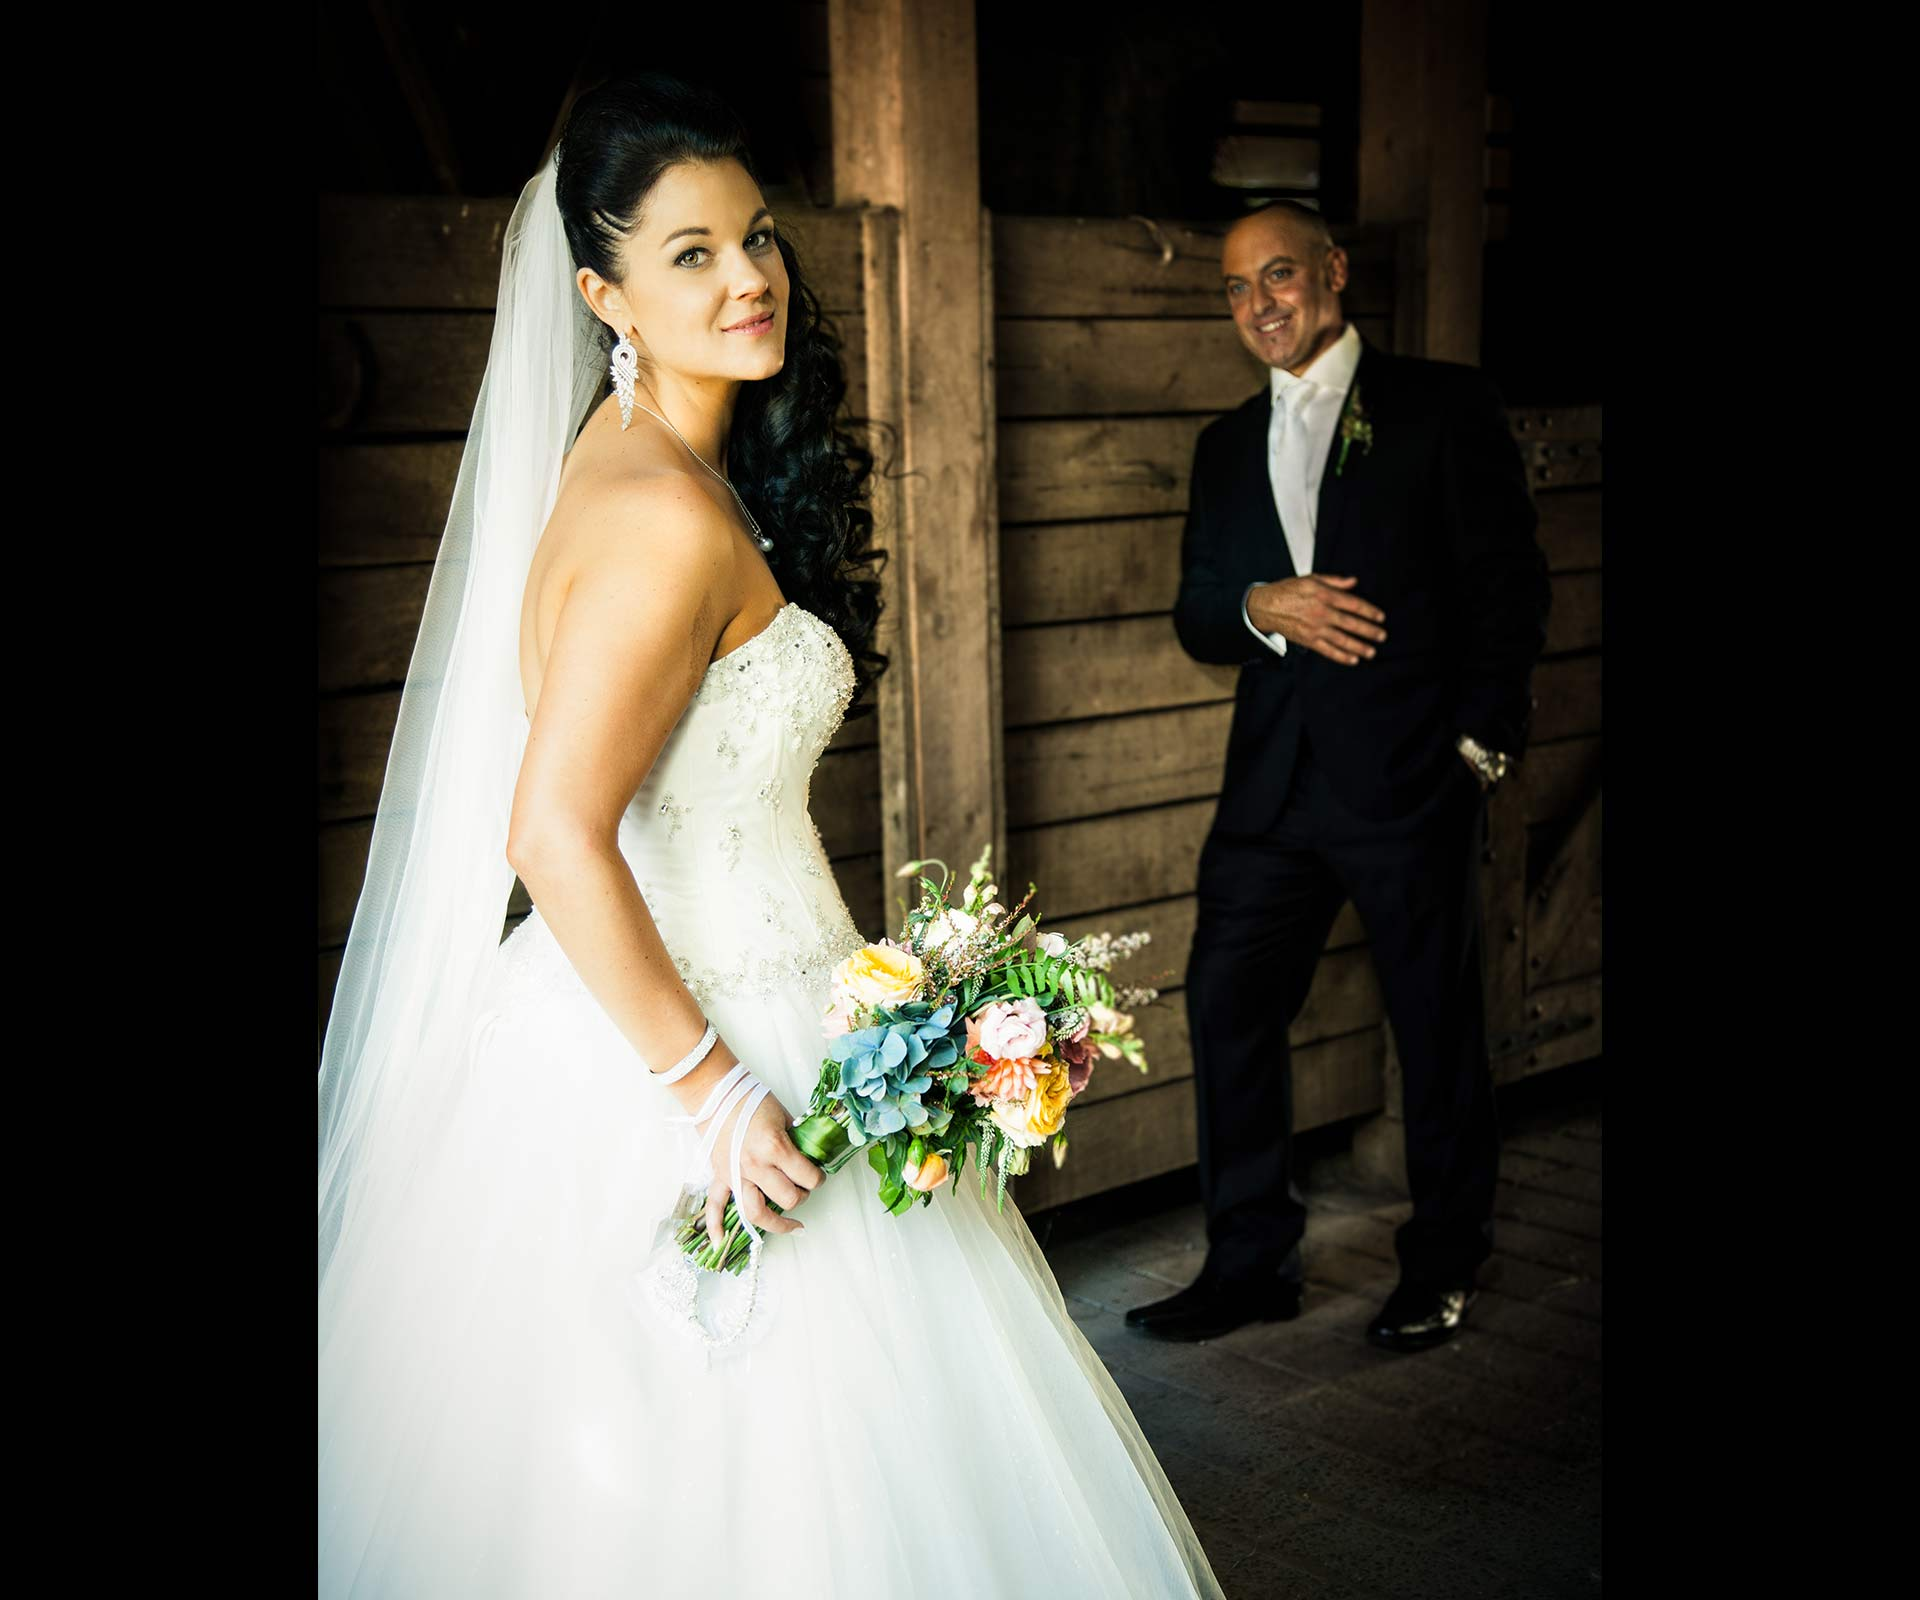 Wedding photoshoot with Nicole Hawkins Infinity8 Multimedia